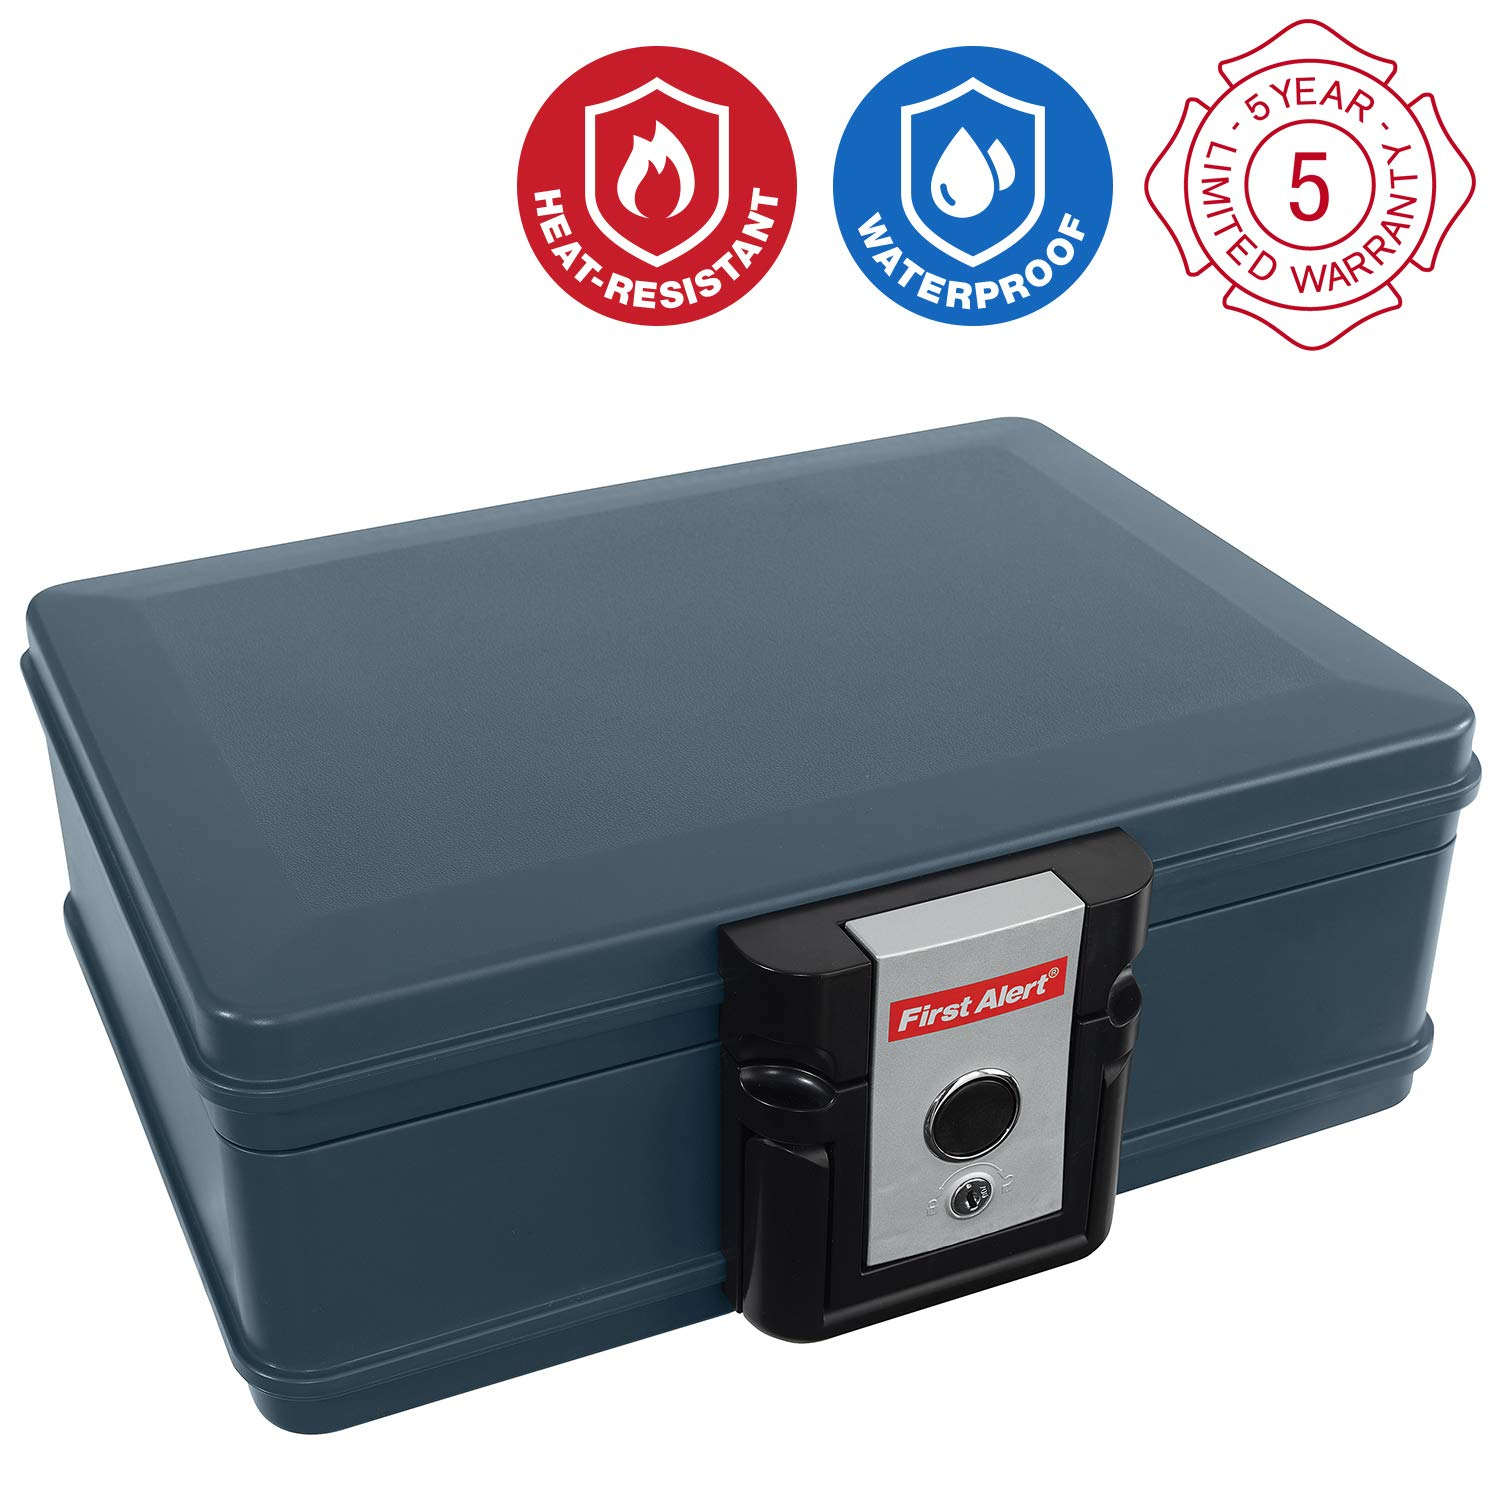 First Alert 2017F Water and Fire Protector File Chest, 0.19 Cubic Feet by First Alert